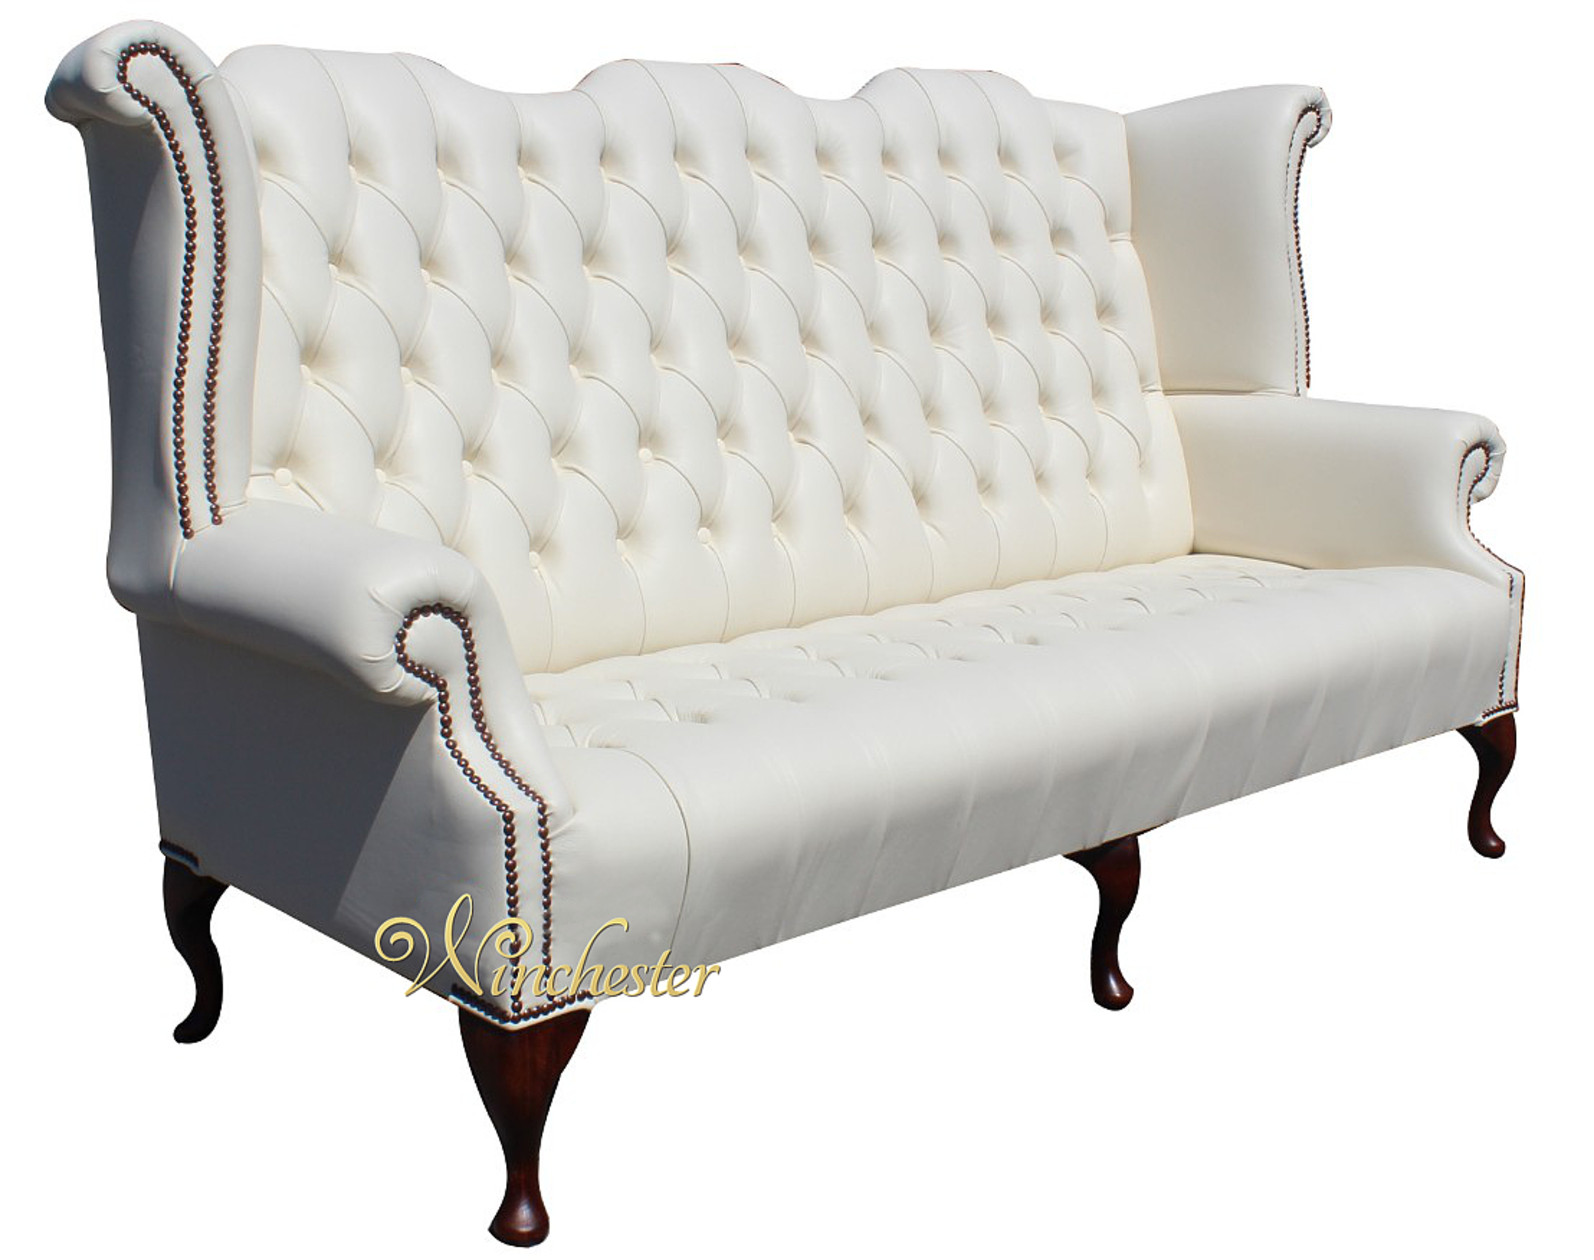 chesterfield sofa leather white sofas usados venda newby 3 seater queen anne high back wing ...